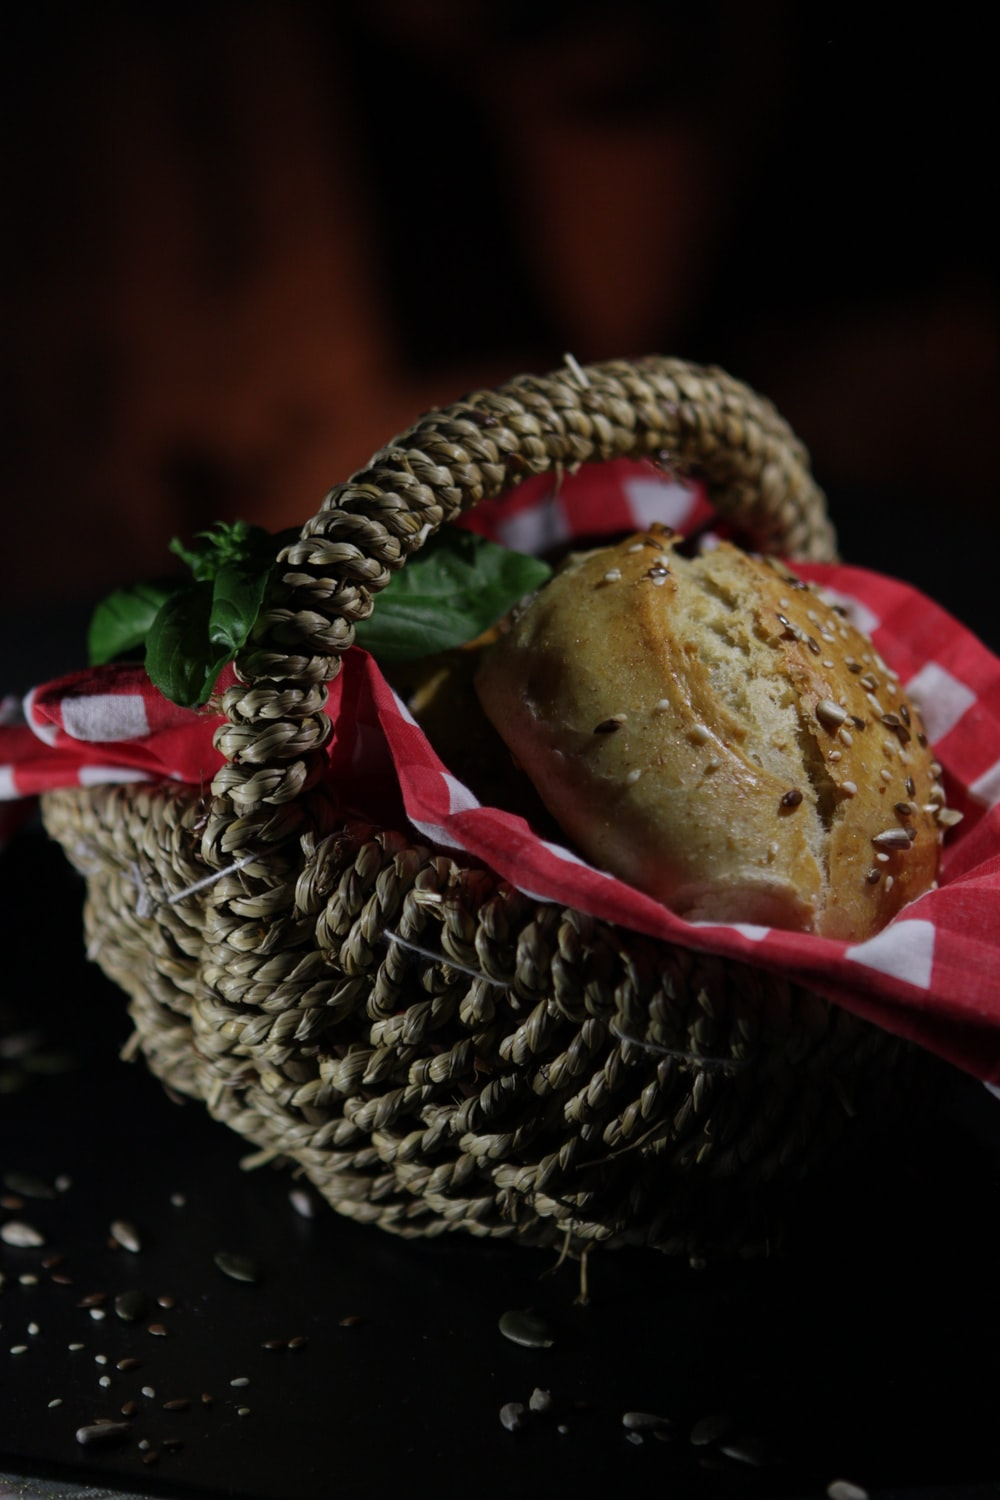 brown bread on red plate